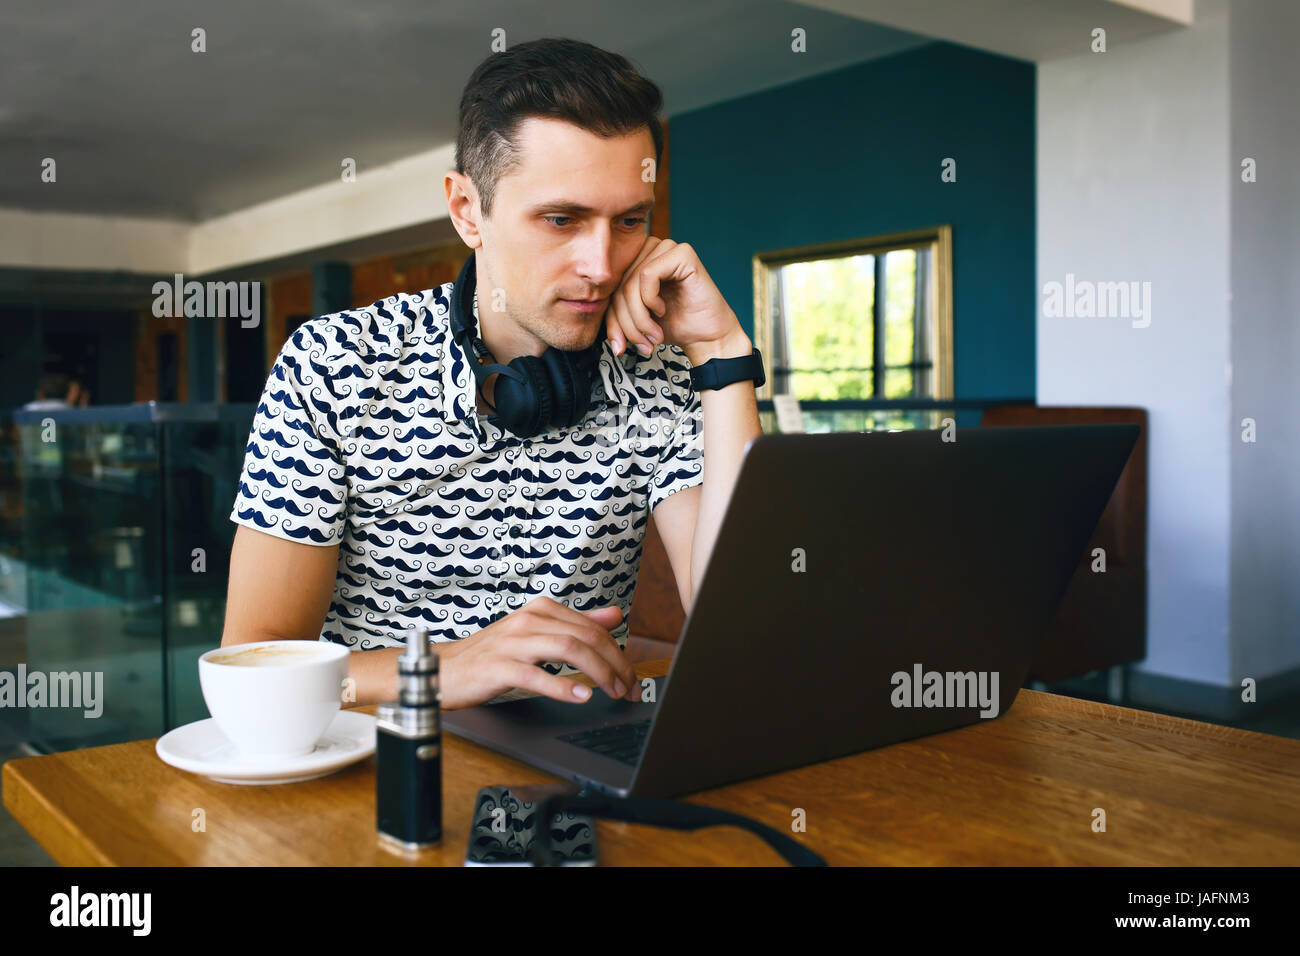 Attractive male worker is using computer in cafeteria - Stock Image